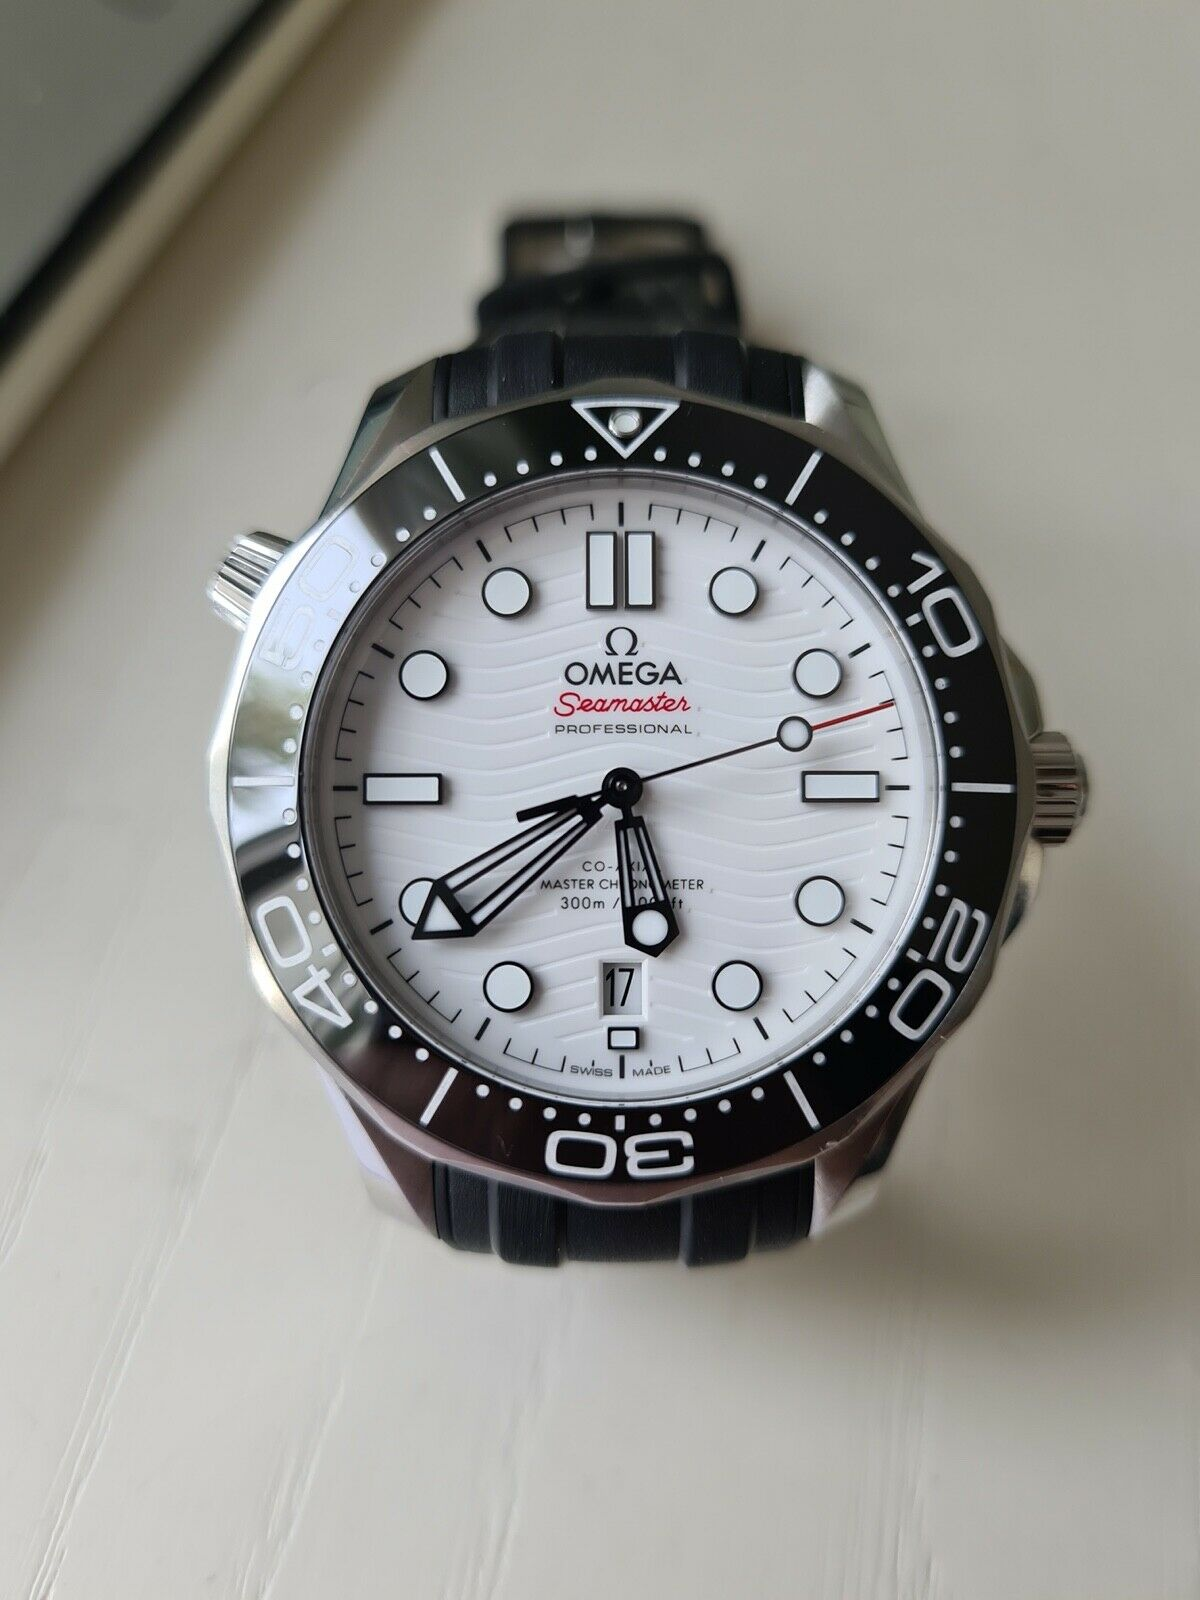 The Omega Seamaster fake watch is with high cost performance.